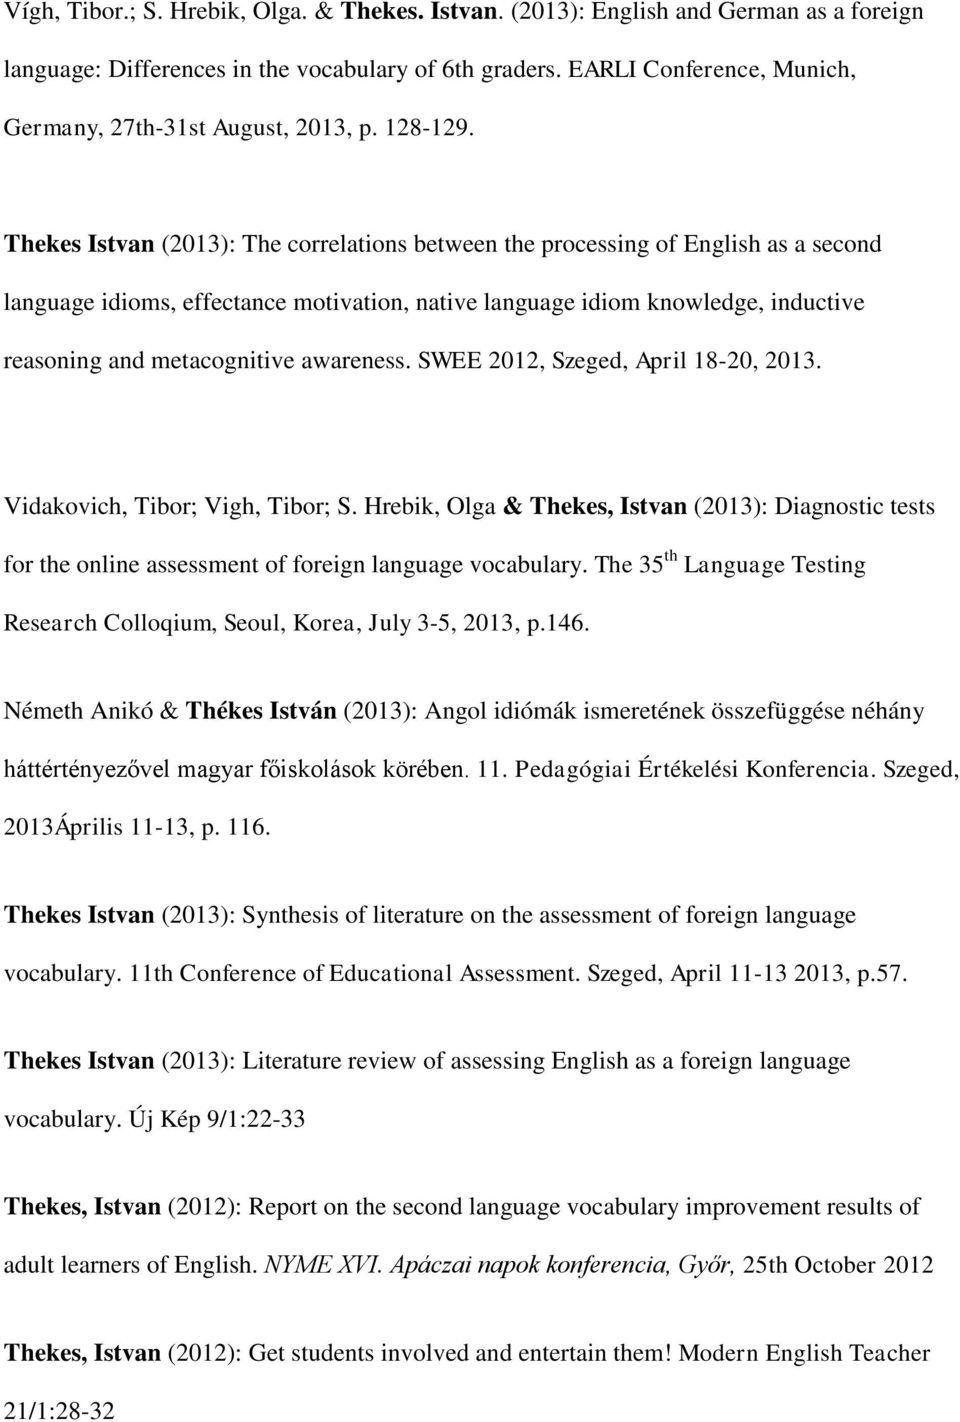 Thekes Istvan (2013): The correlations between the processing of English as a second language idioms, effectance motivation, native language idiom knowledge, inductive reasoning and metacognitive